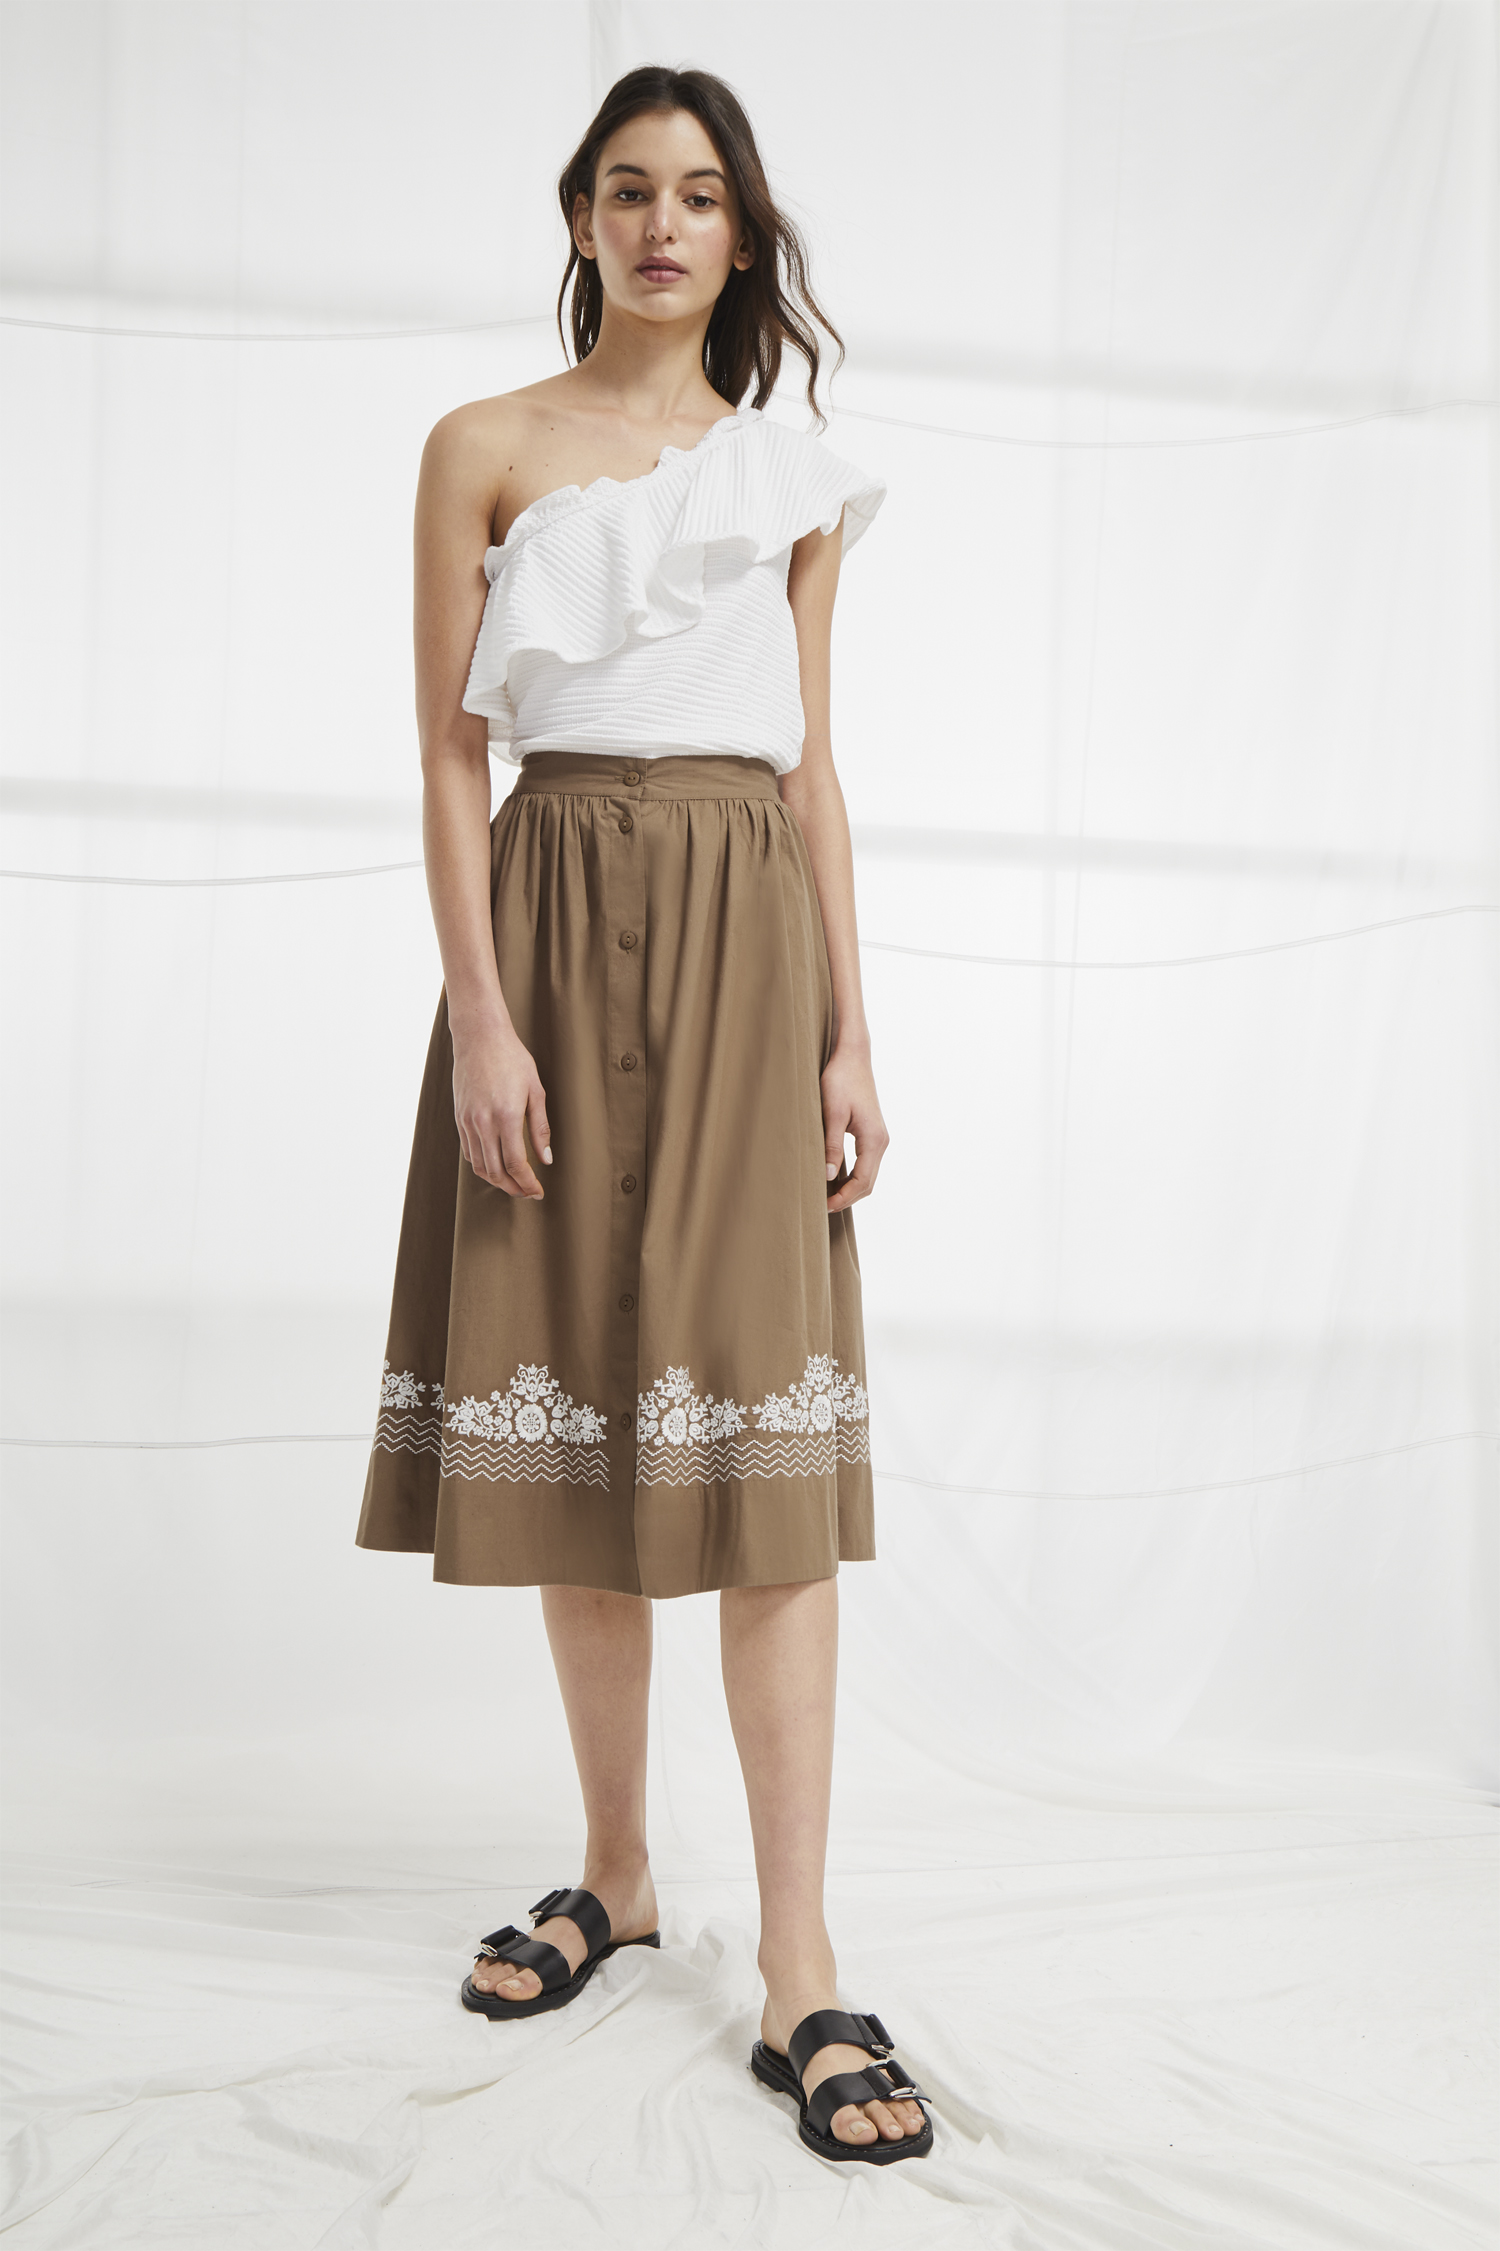 Embroidered Skirt Rhodea Poplin Basque 5jA3RL4